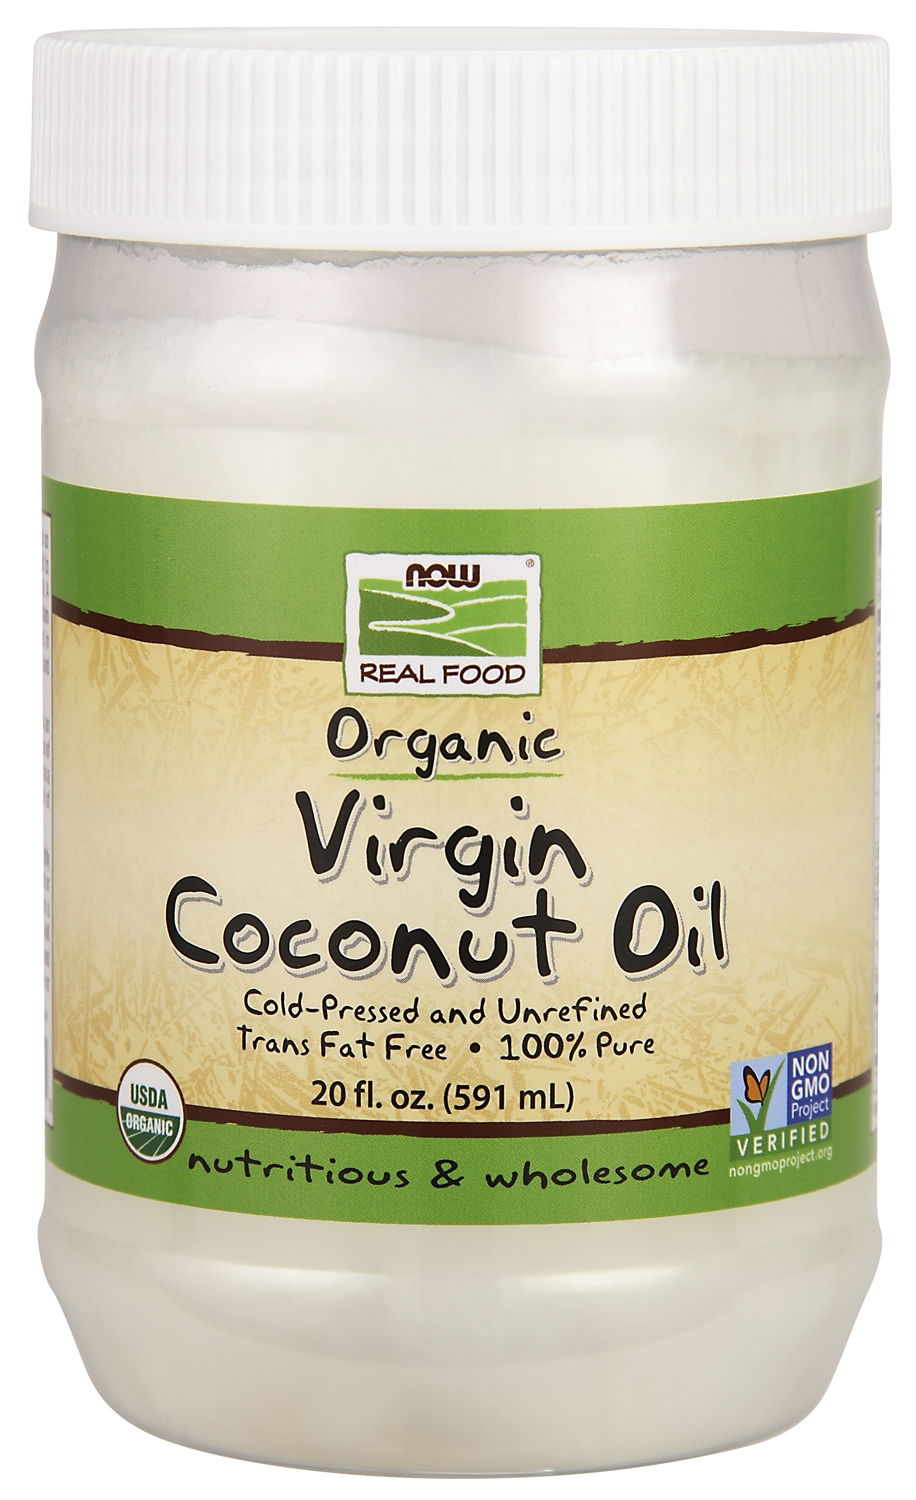 Virgin Coconut Oil 20 fl oz (591 ml) by NOW